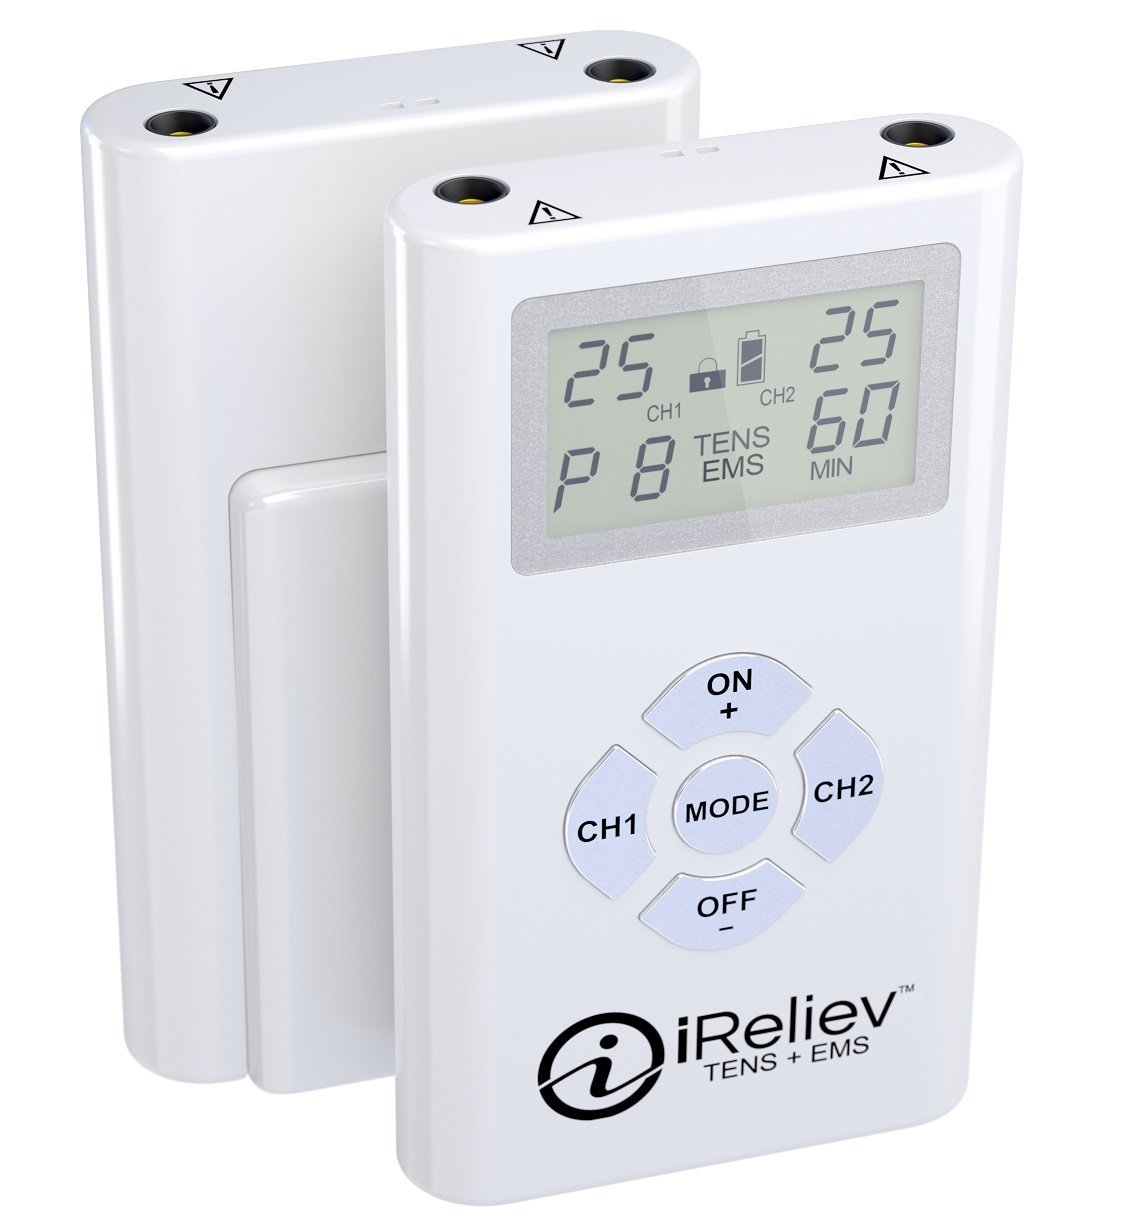 ireliev-tens-and-ems-combination-unit-muscle-stimulator-for-pain-relief